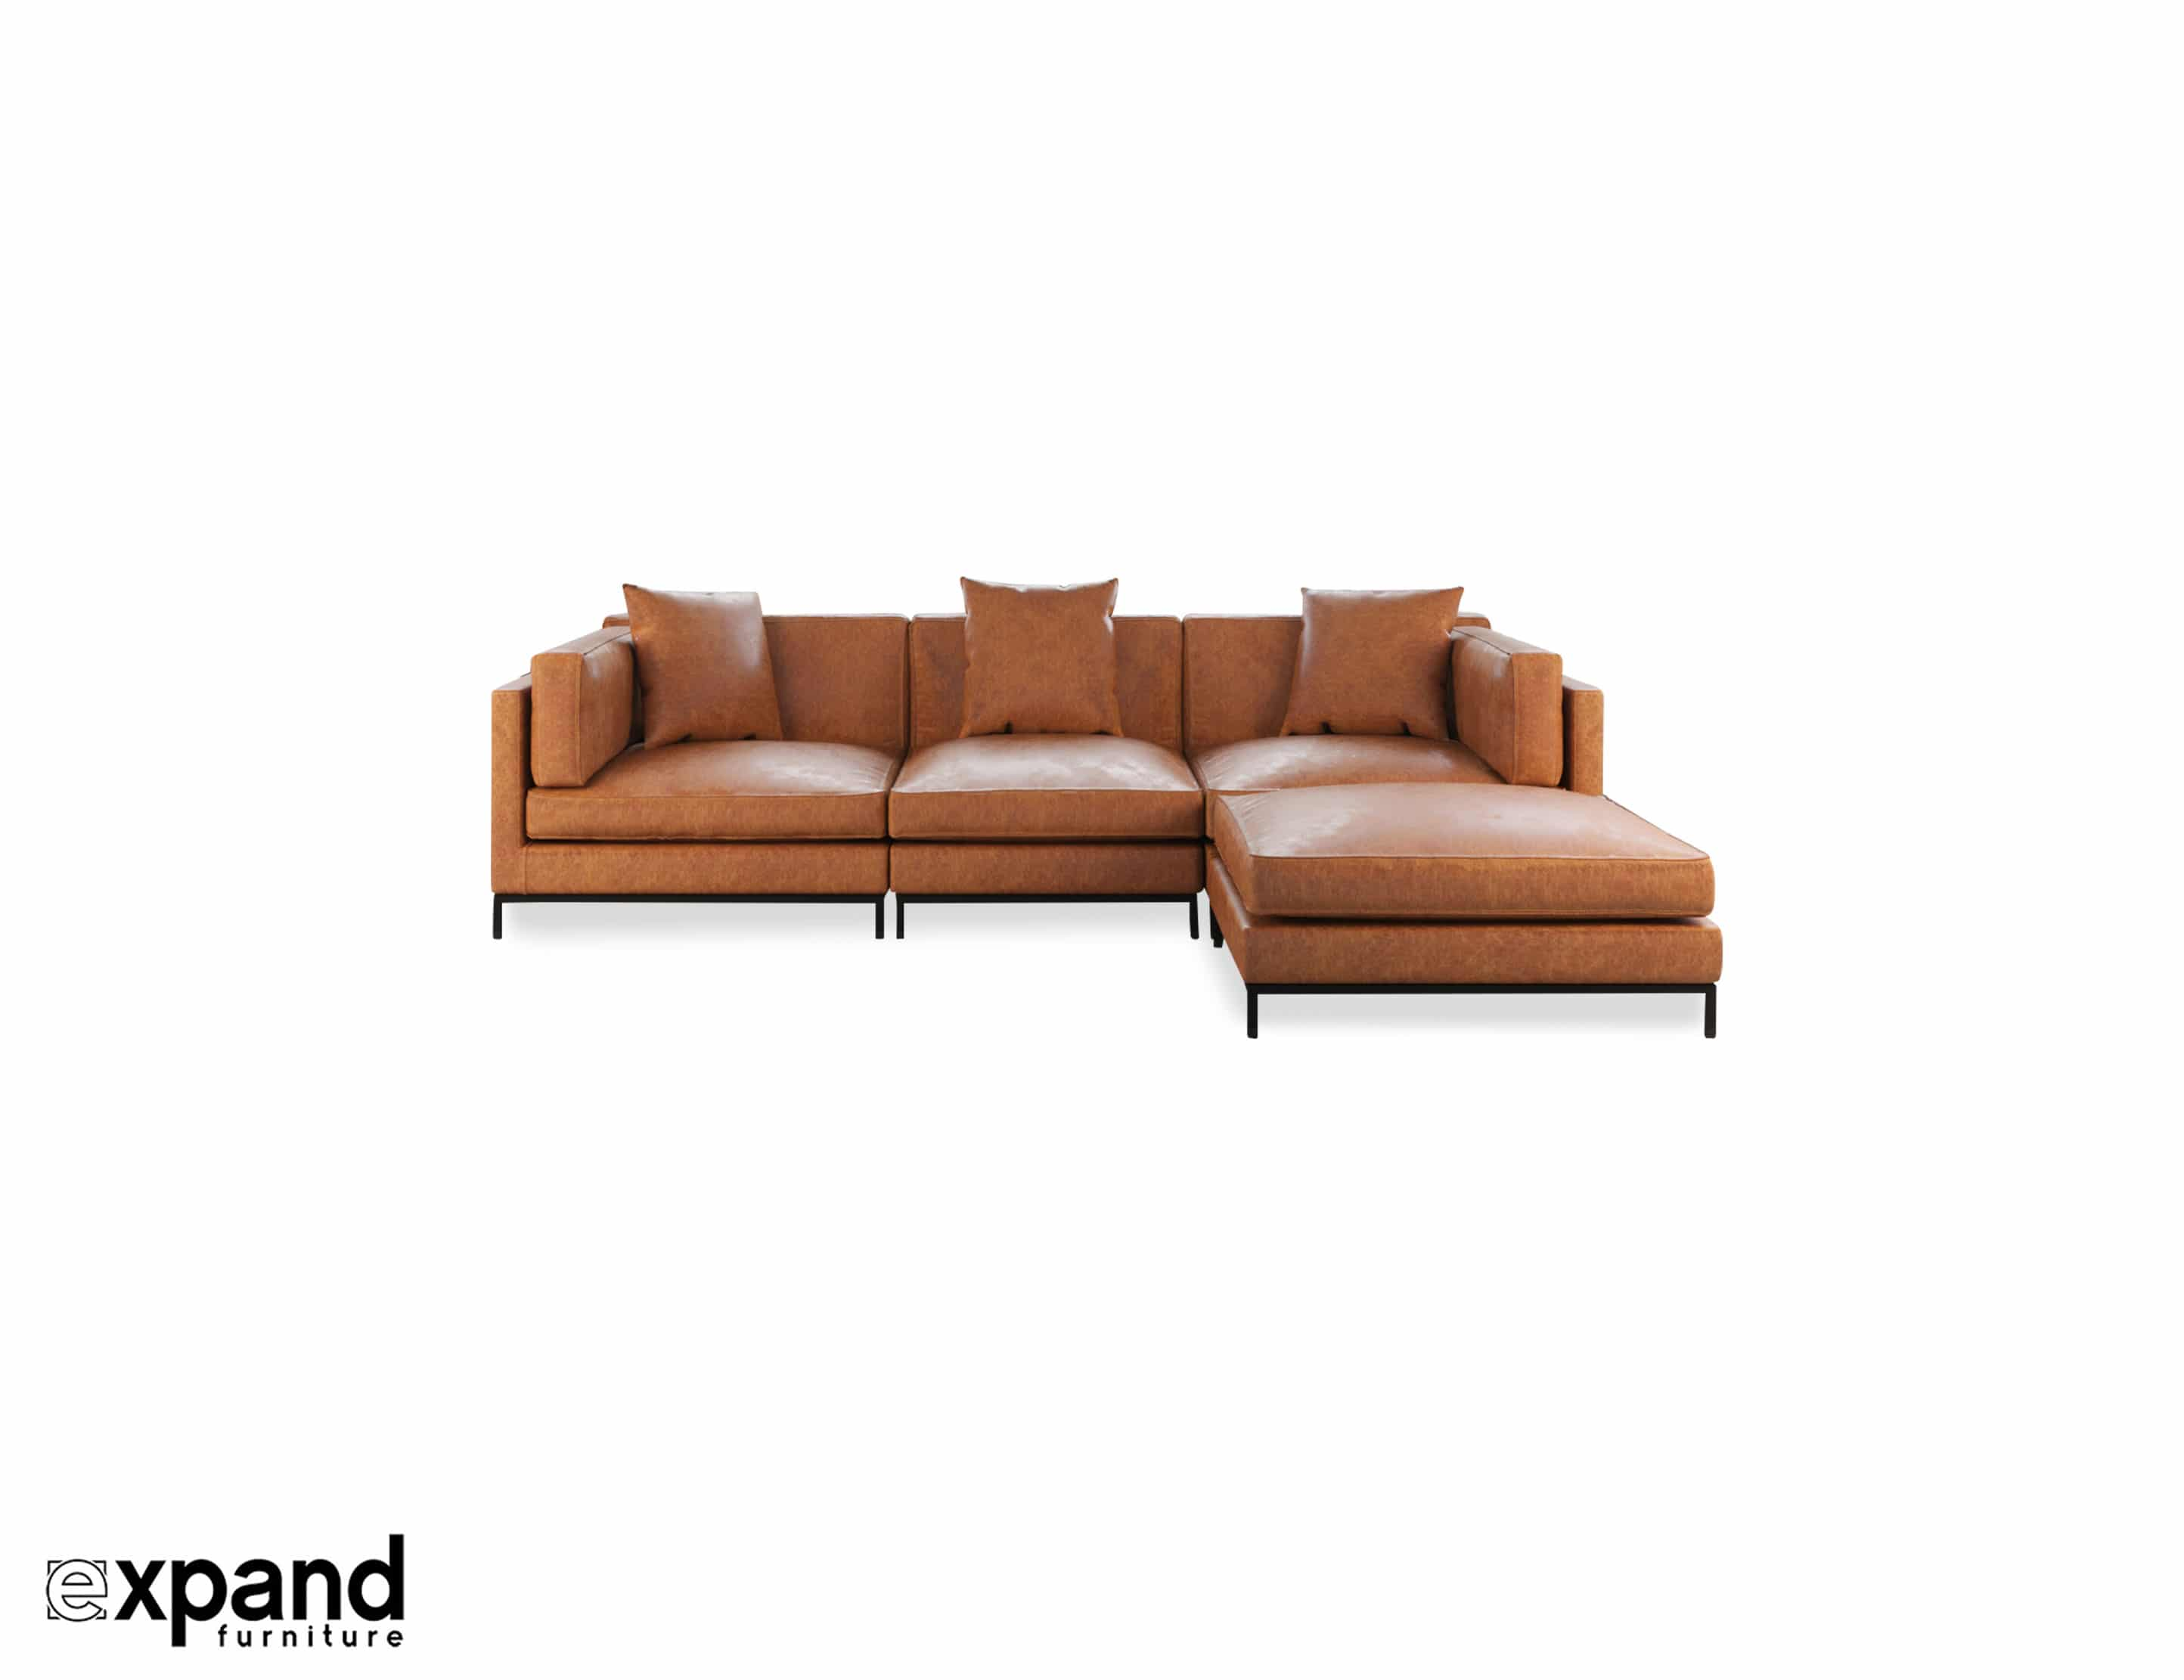 Leather Sectional Vancouver Migliore Sectional Best Leather Or Fabric Modular Sofa Design